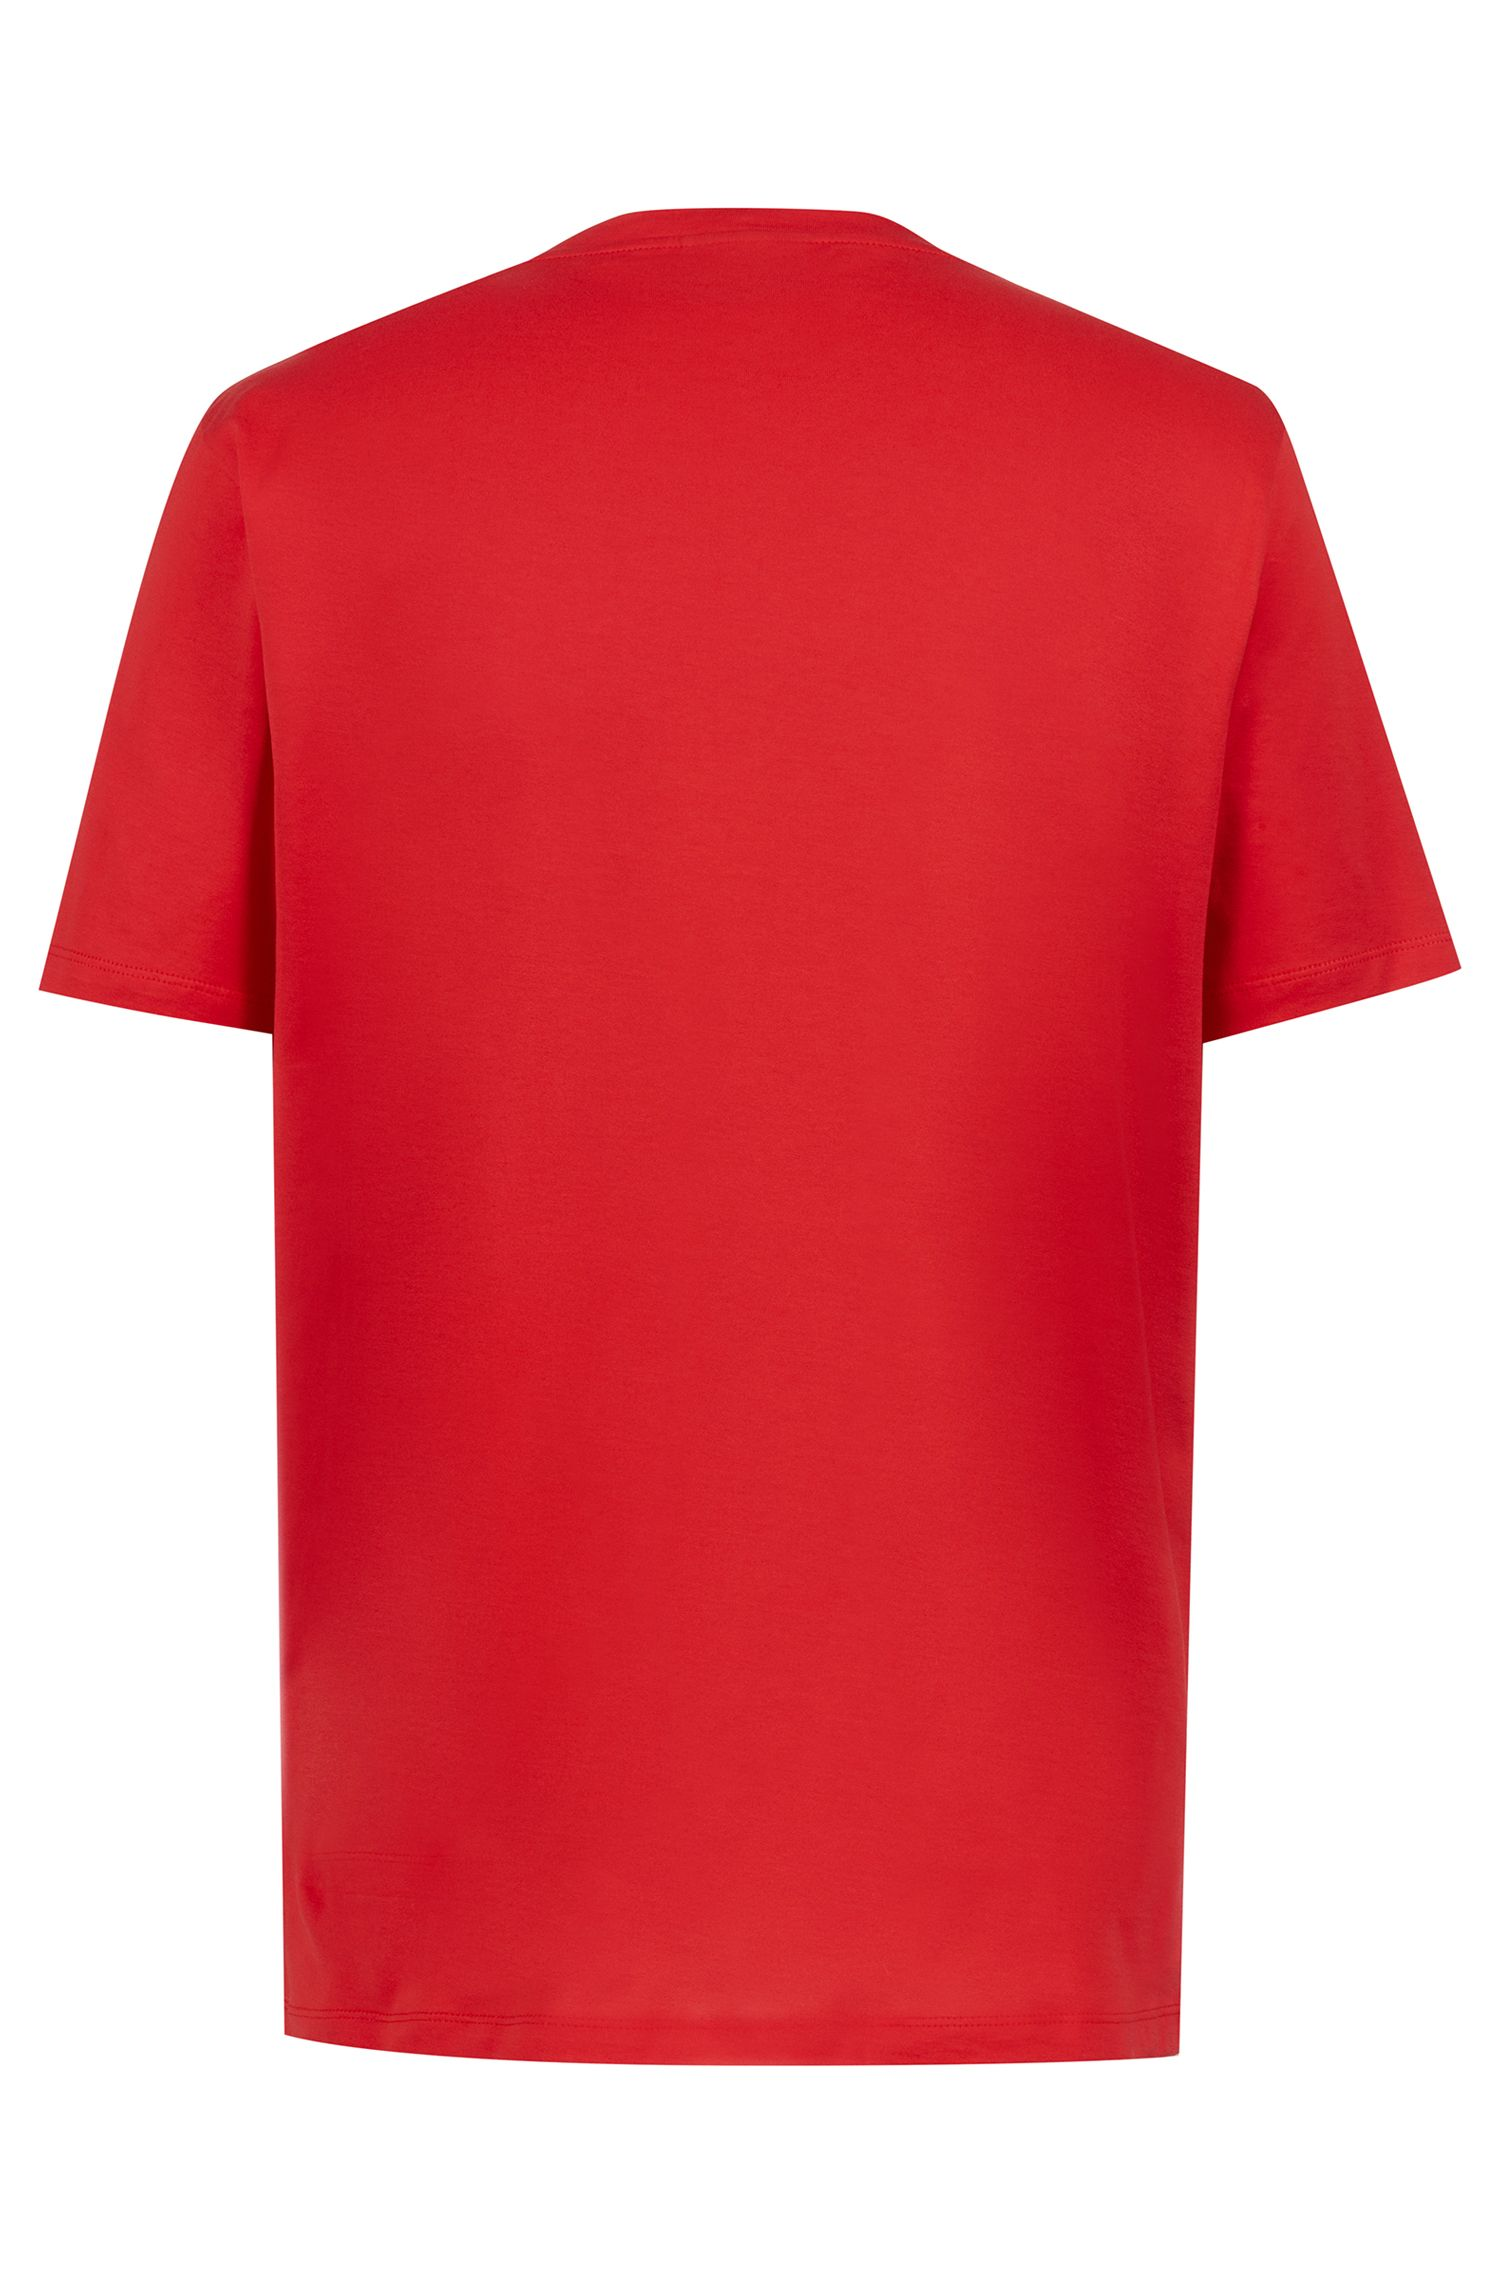 Crew-neck T-shirt in cotton with reverse-logo print, Red